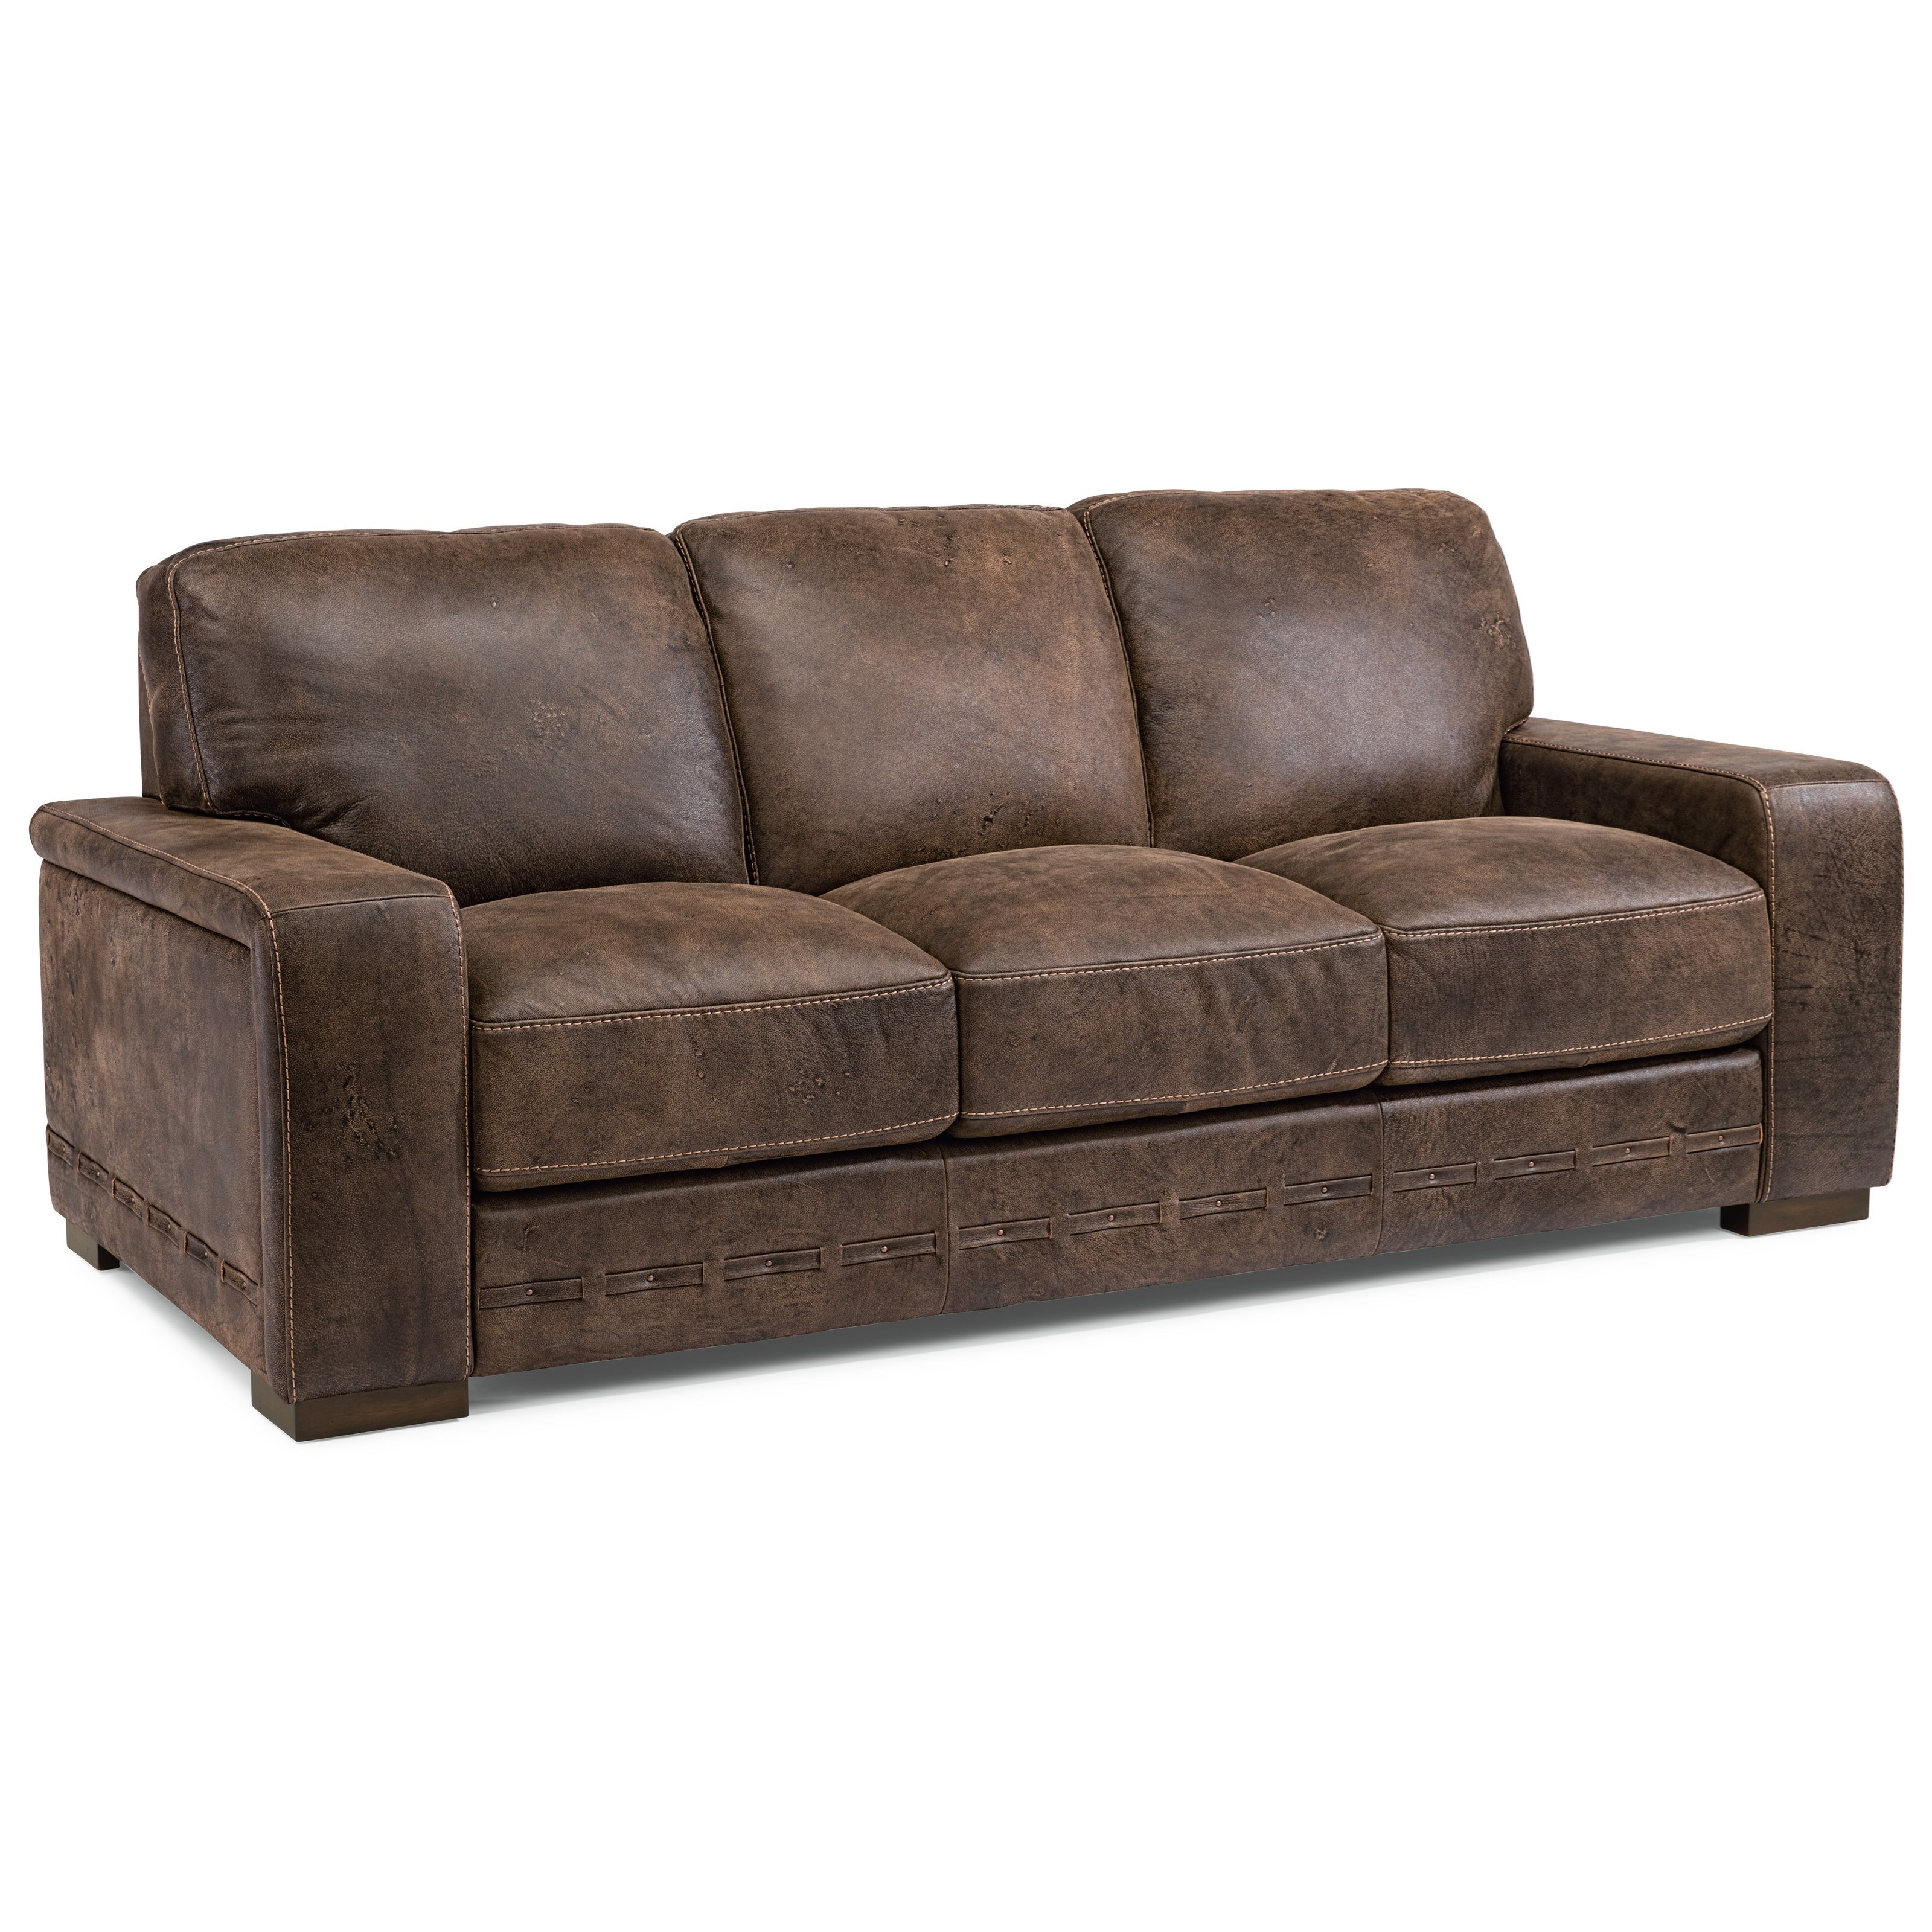 Flexsteel Buxton Contemporary Leather Sofa Dunk & Bright